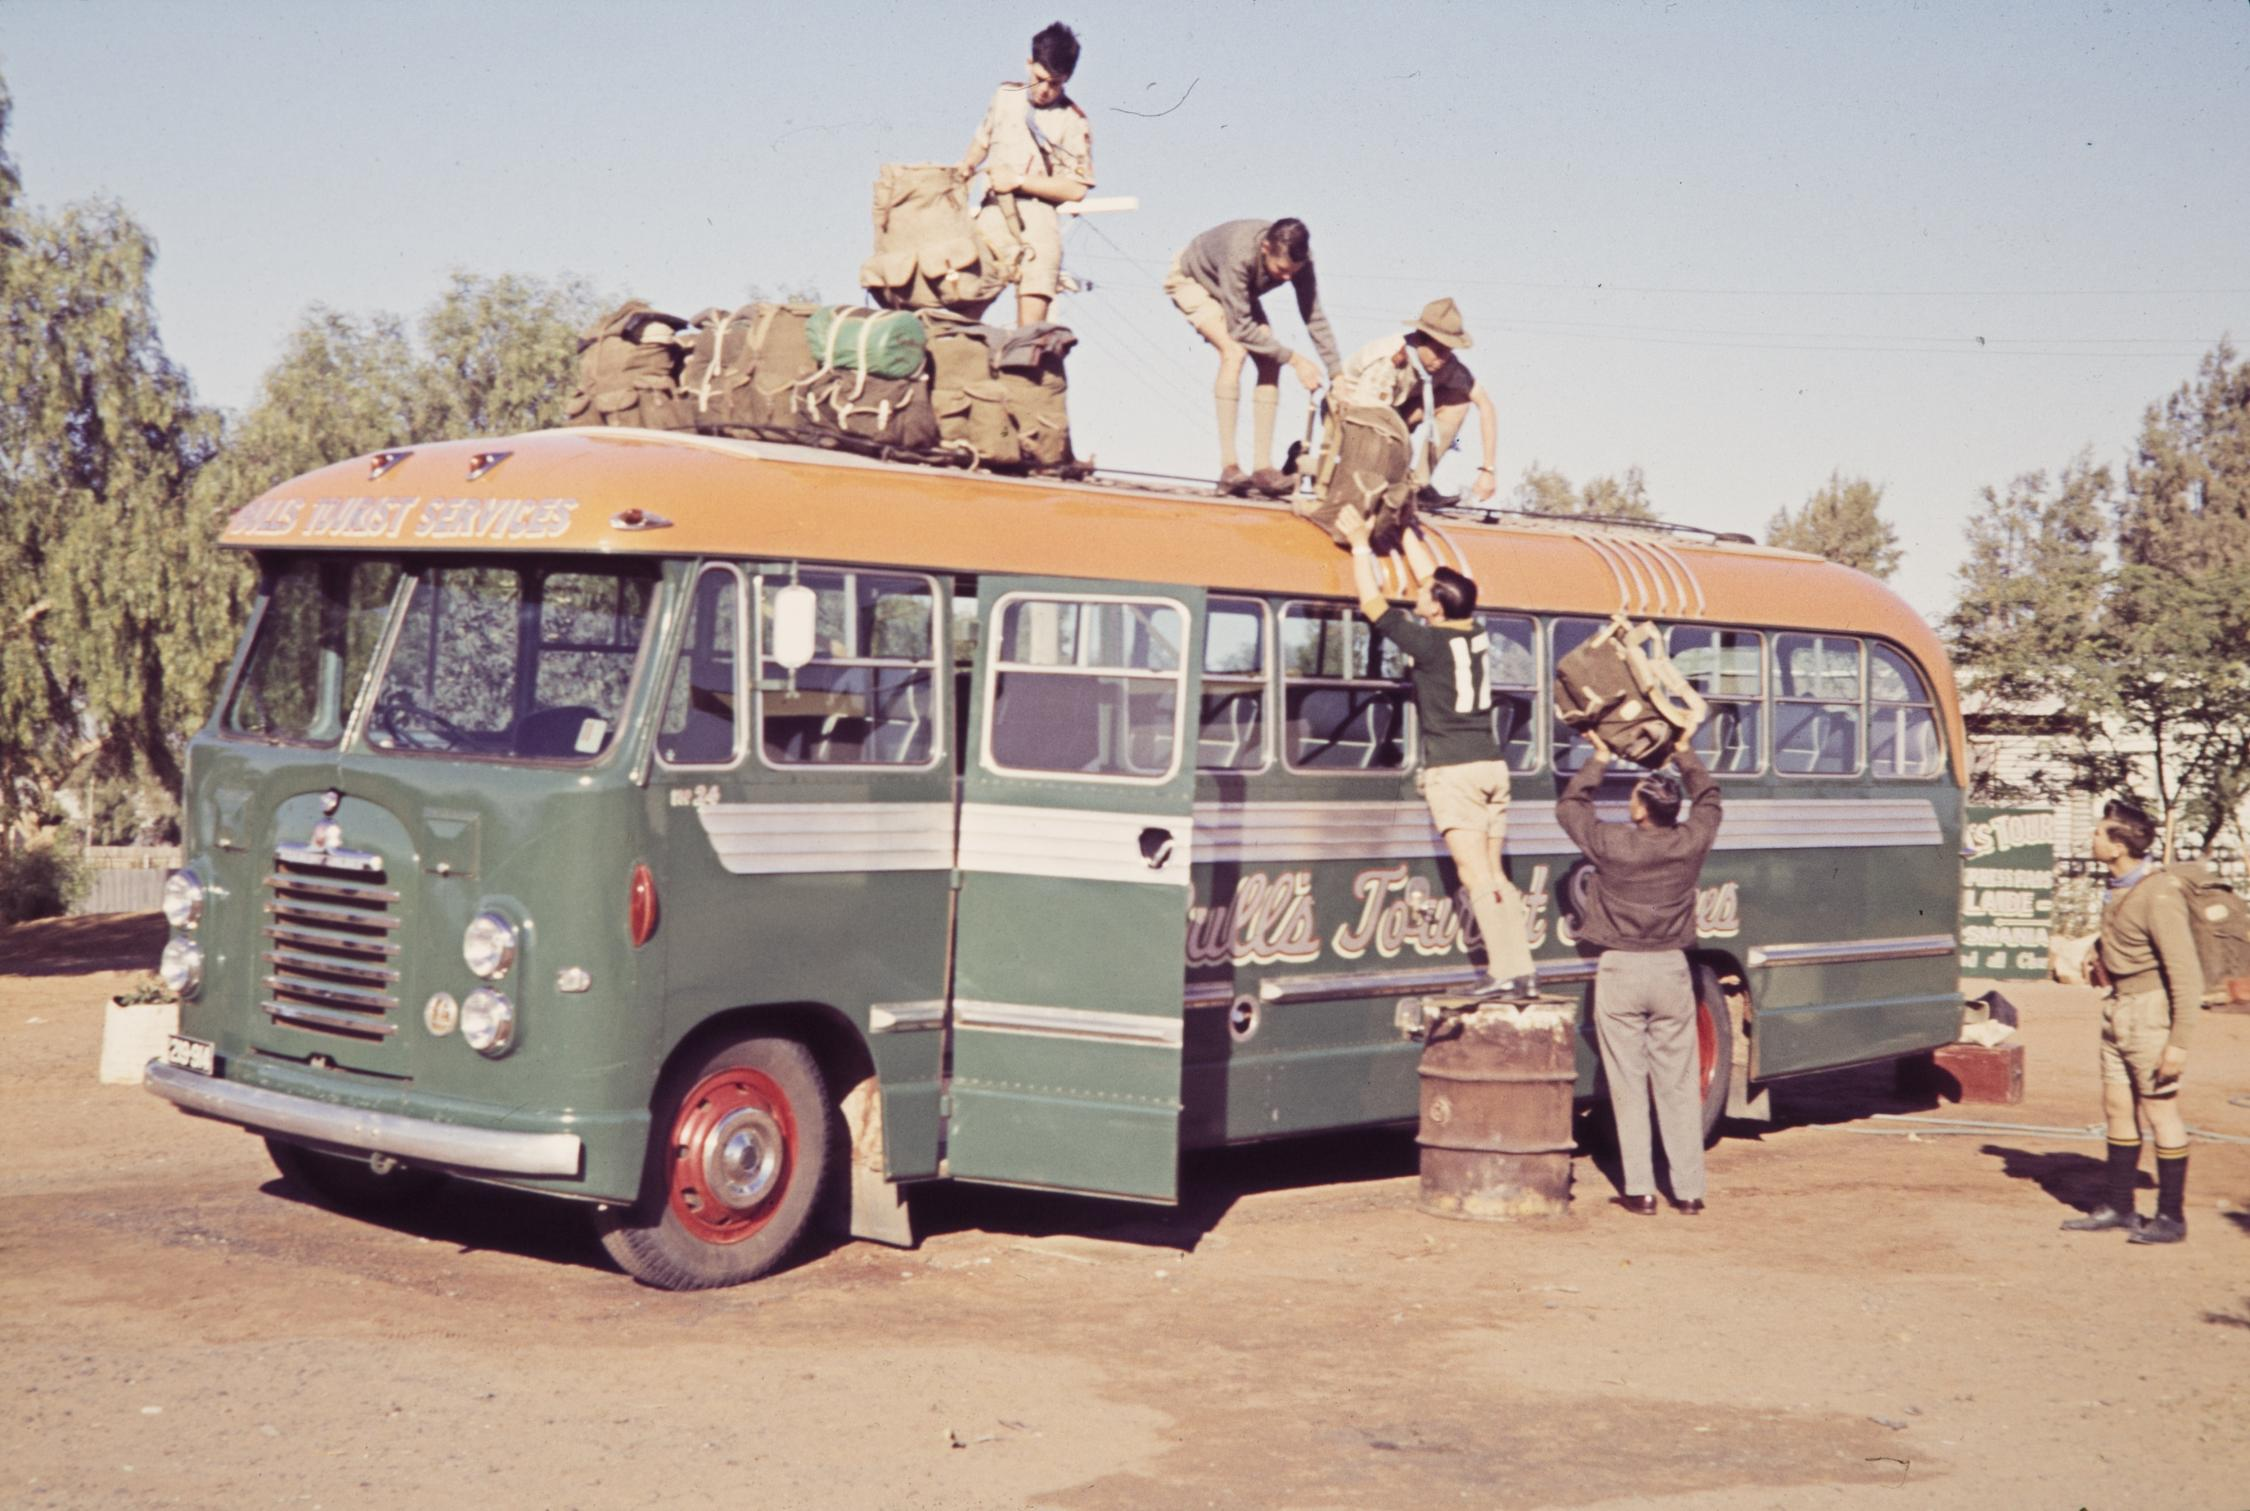 A stationary tour bus from circa 1950s coloured green and yellow being by five boys loading suitcases on the roof of the bus.